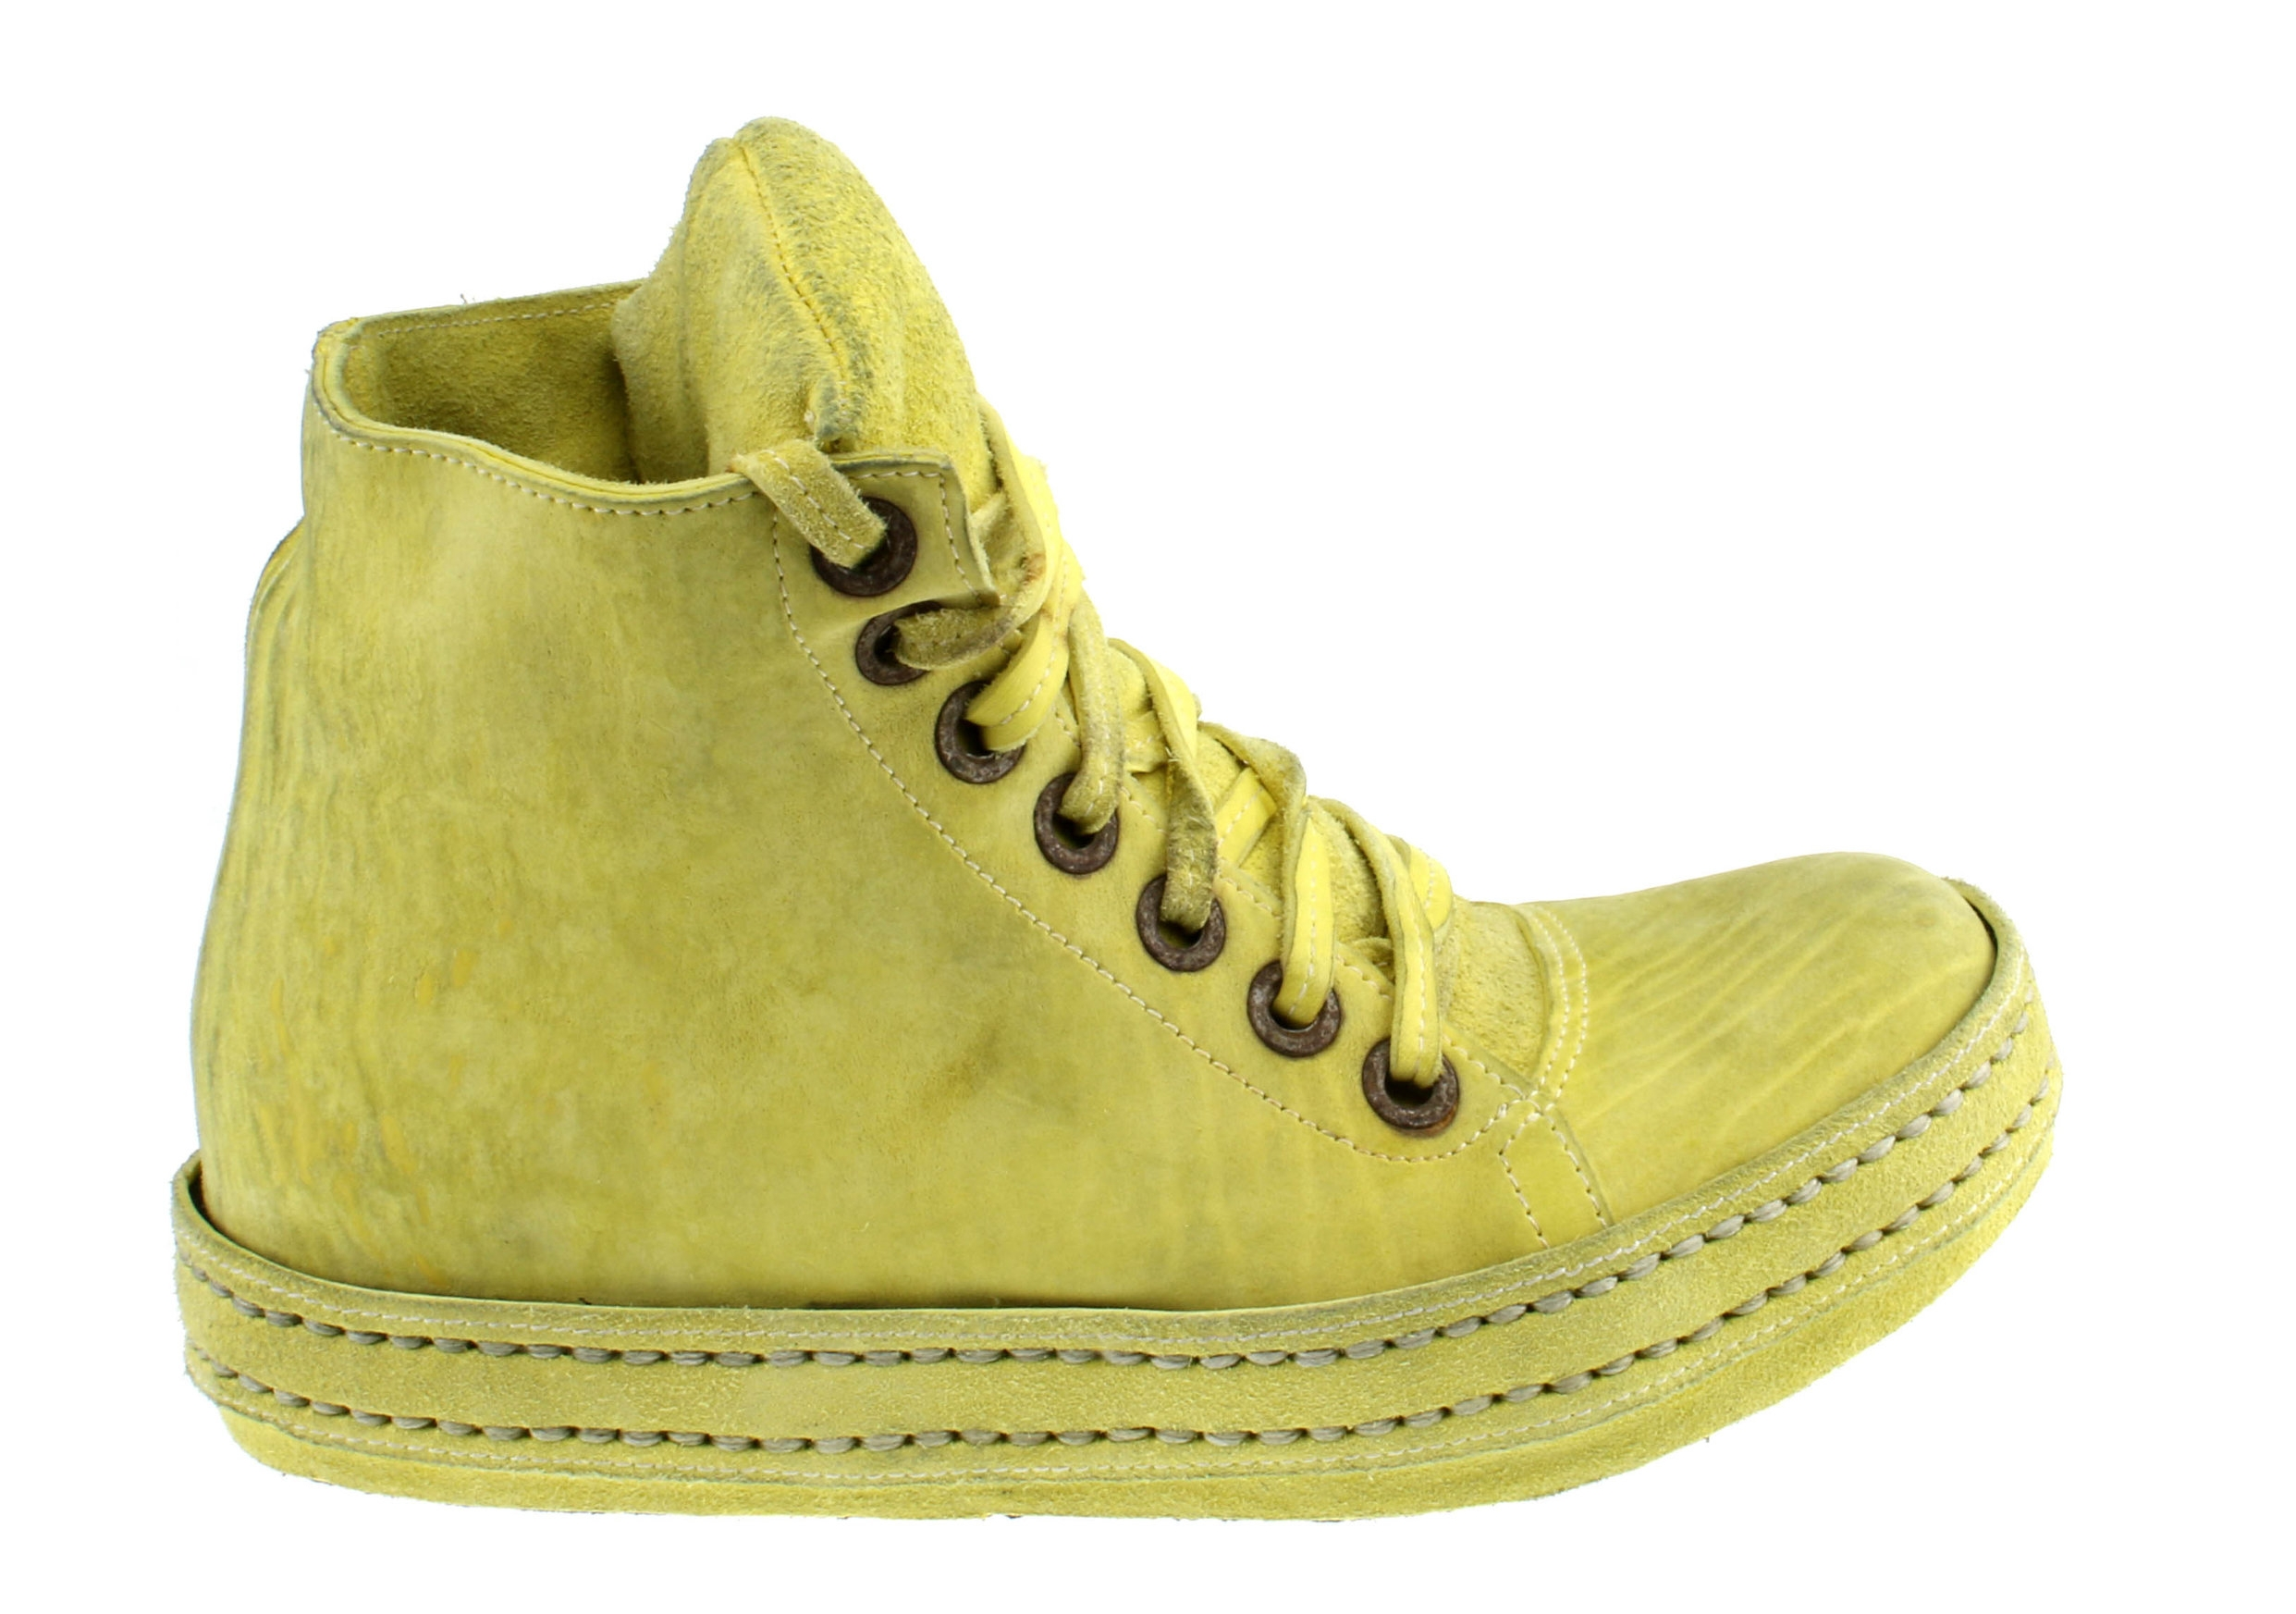 7Hole Washed Yellow Suede Culatta